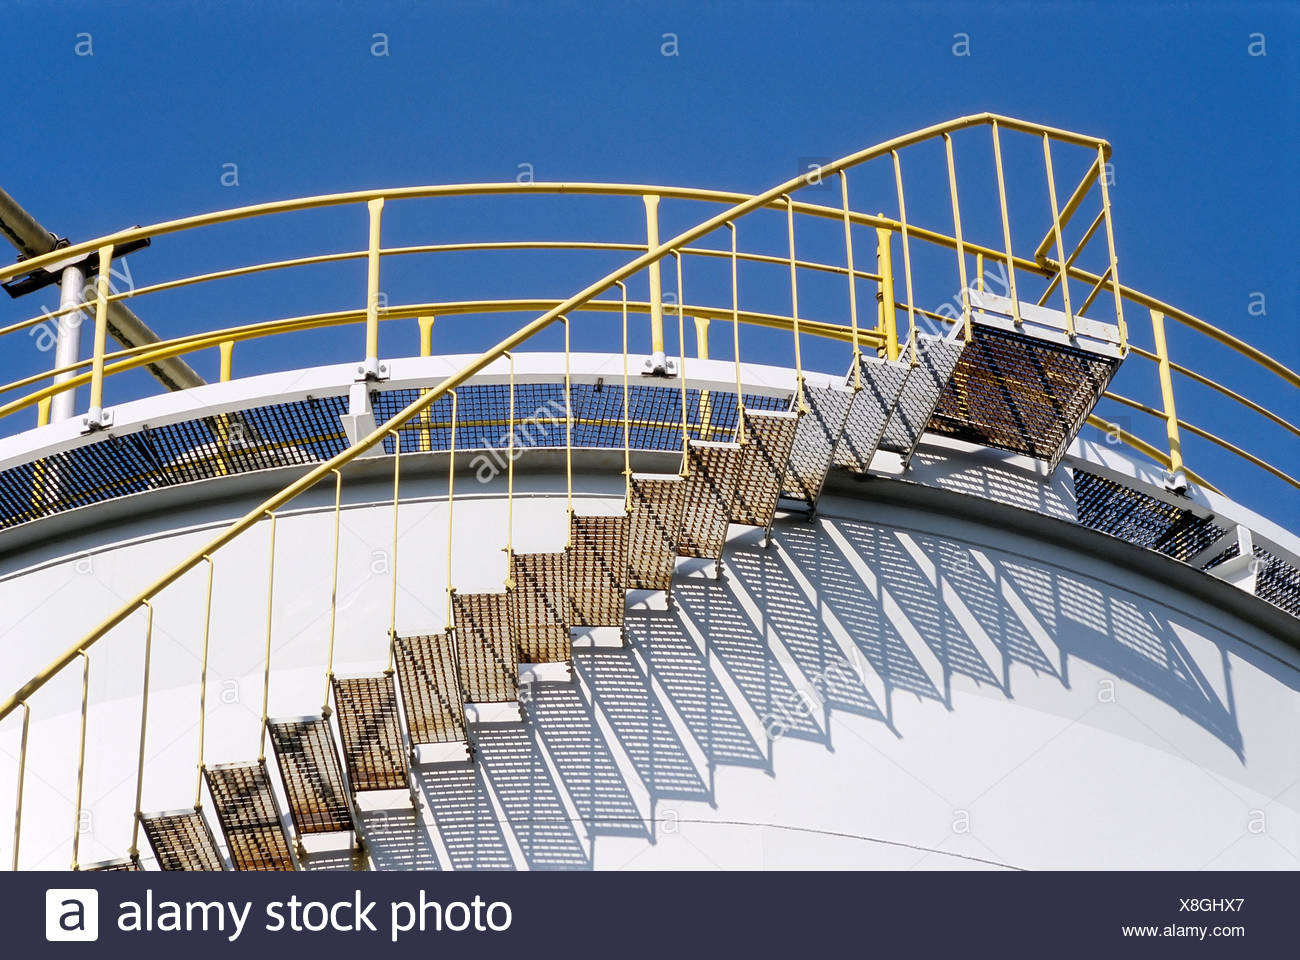 Stairs on a tank containing hydrochloric acid, Chempark Krefeld-Uerdingen industrial park, formerly known as Bayer Industry - Stock Image